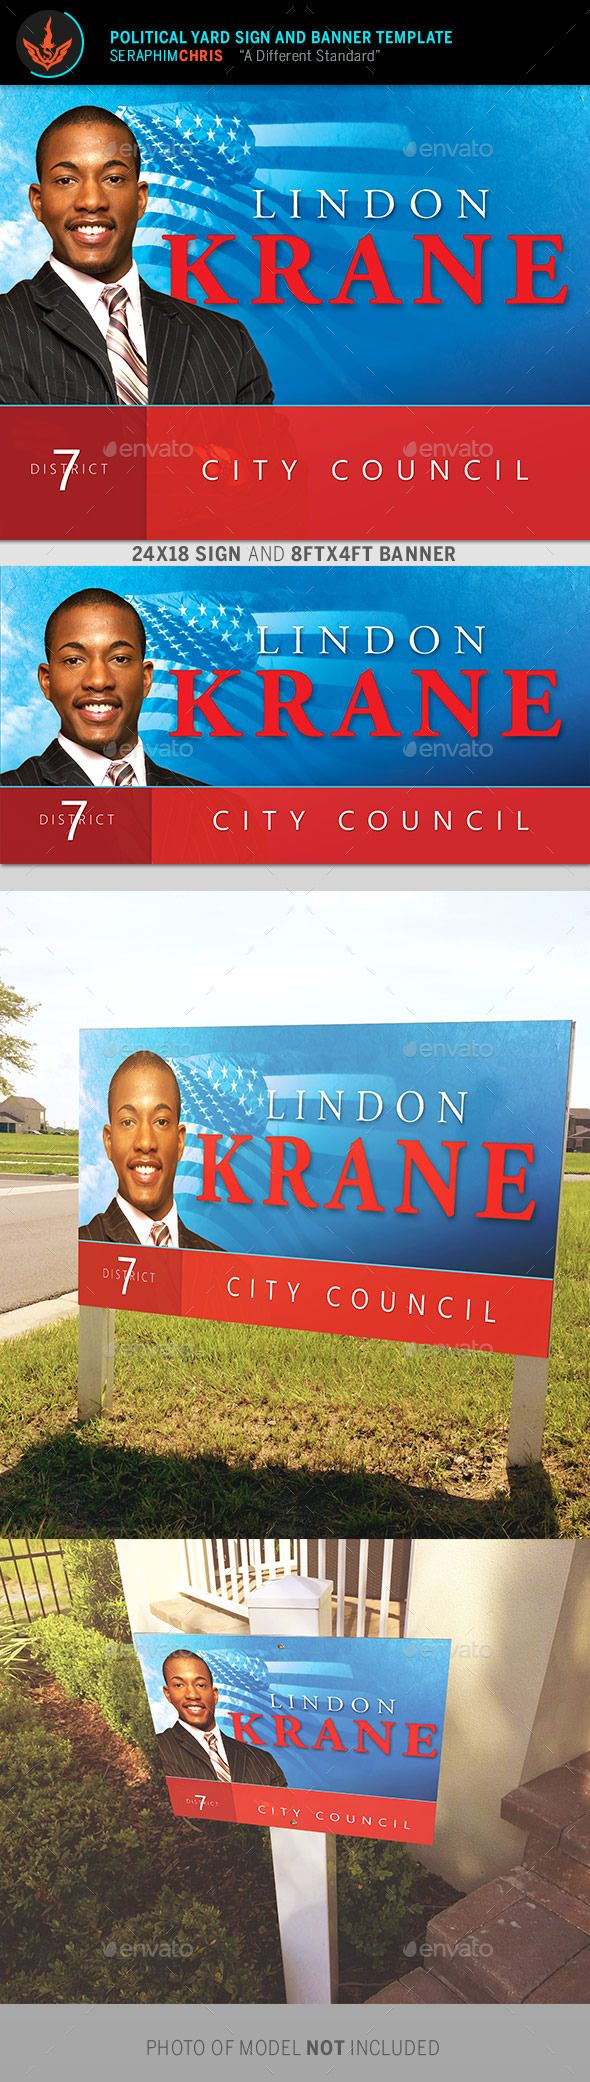 With this Political Yard Sign and Banner Template you'll have the highest quality presentation. This file customiszed for ease of use and is exclusive to graphicriver.net